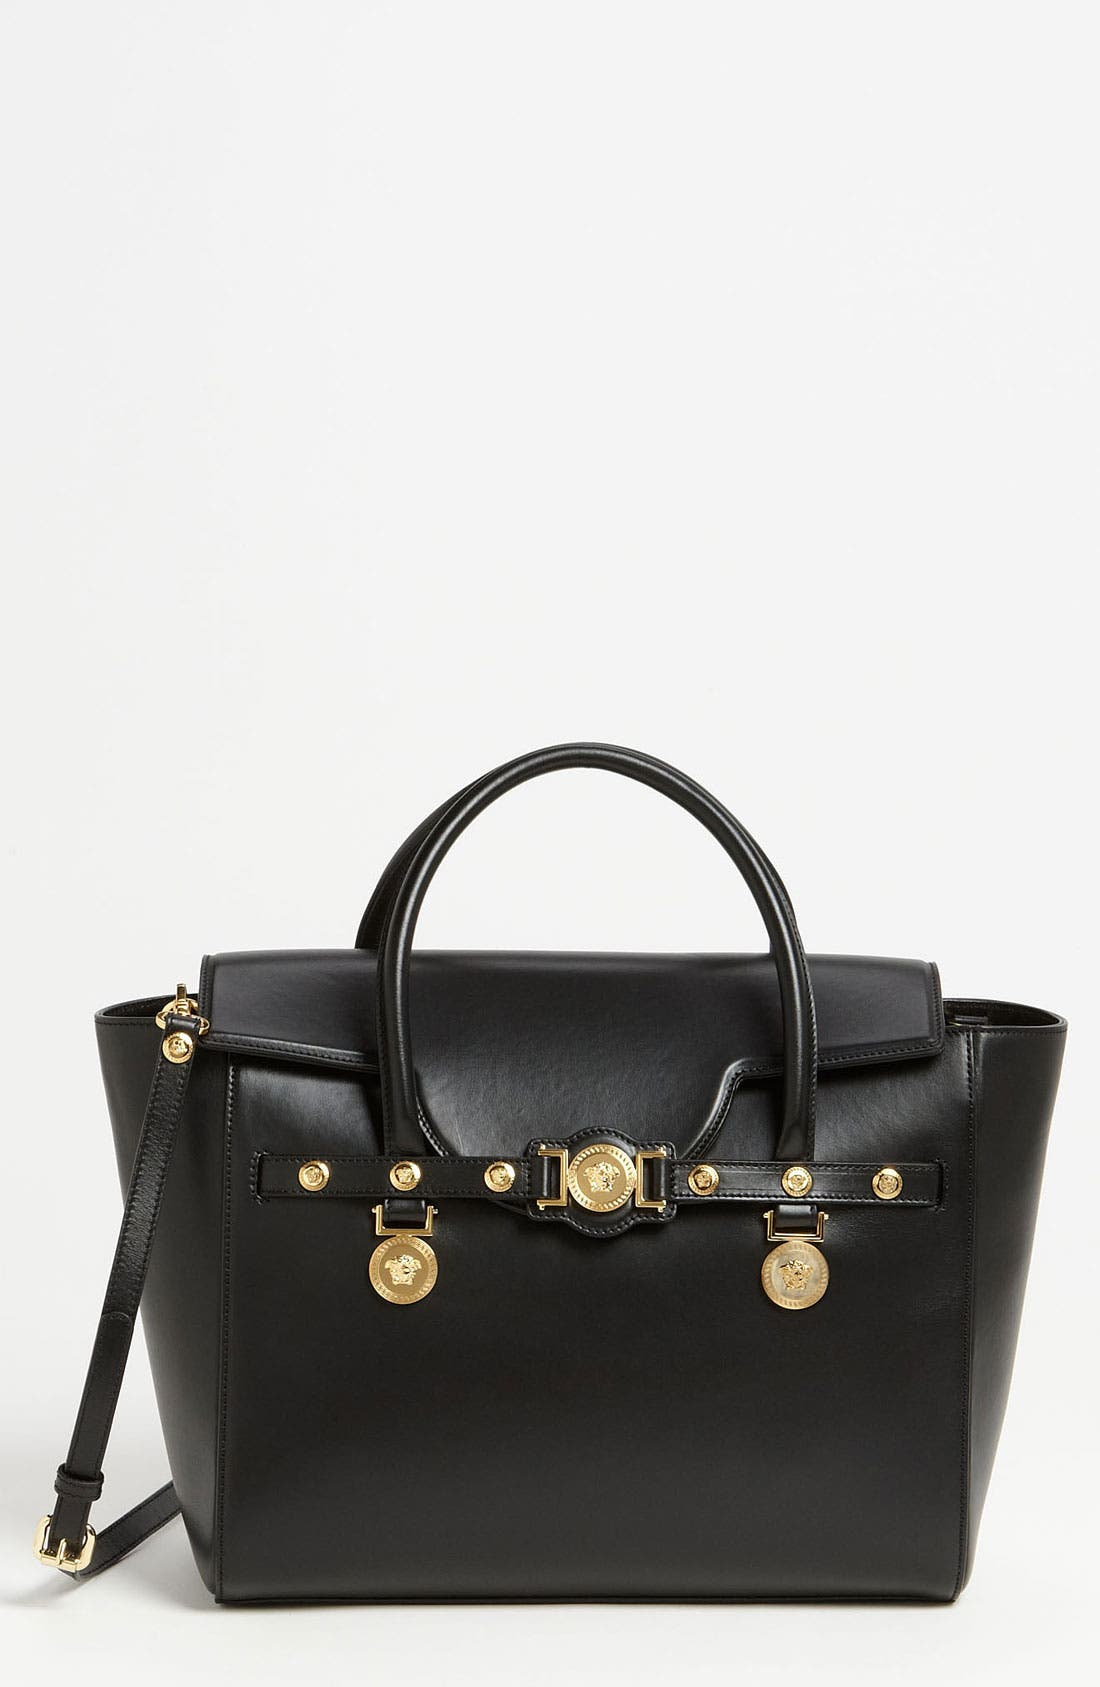 Main Image - Versace 'Classic' Leather Satchel